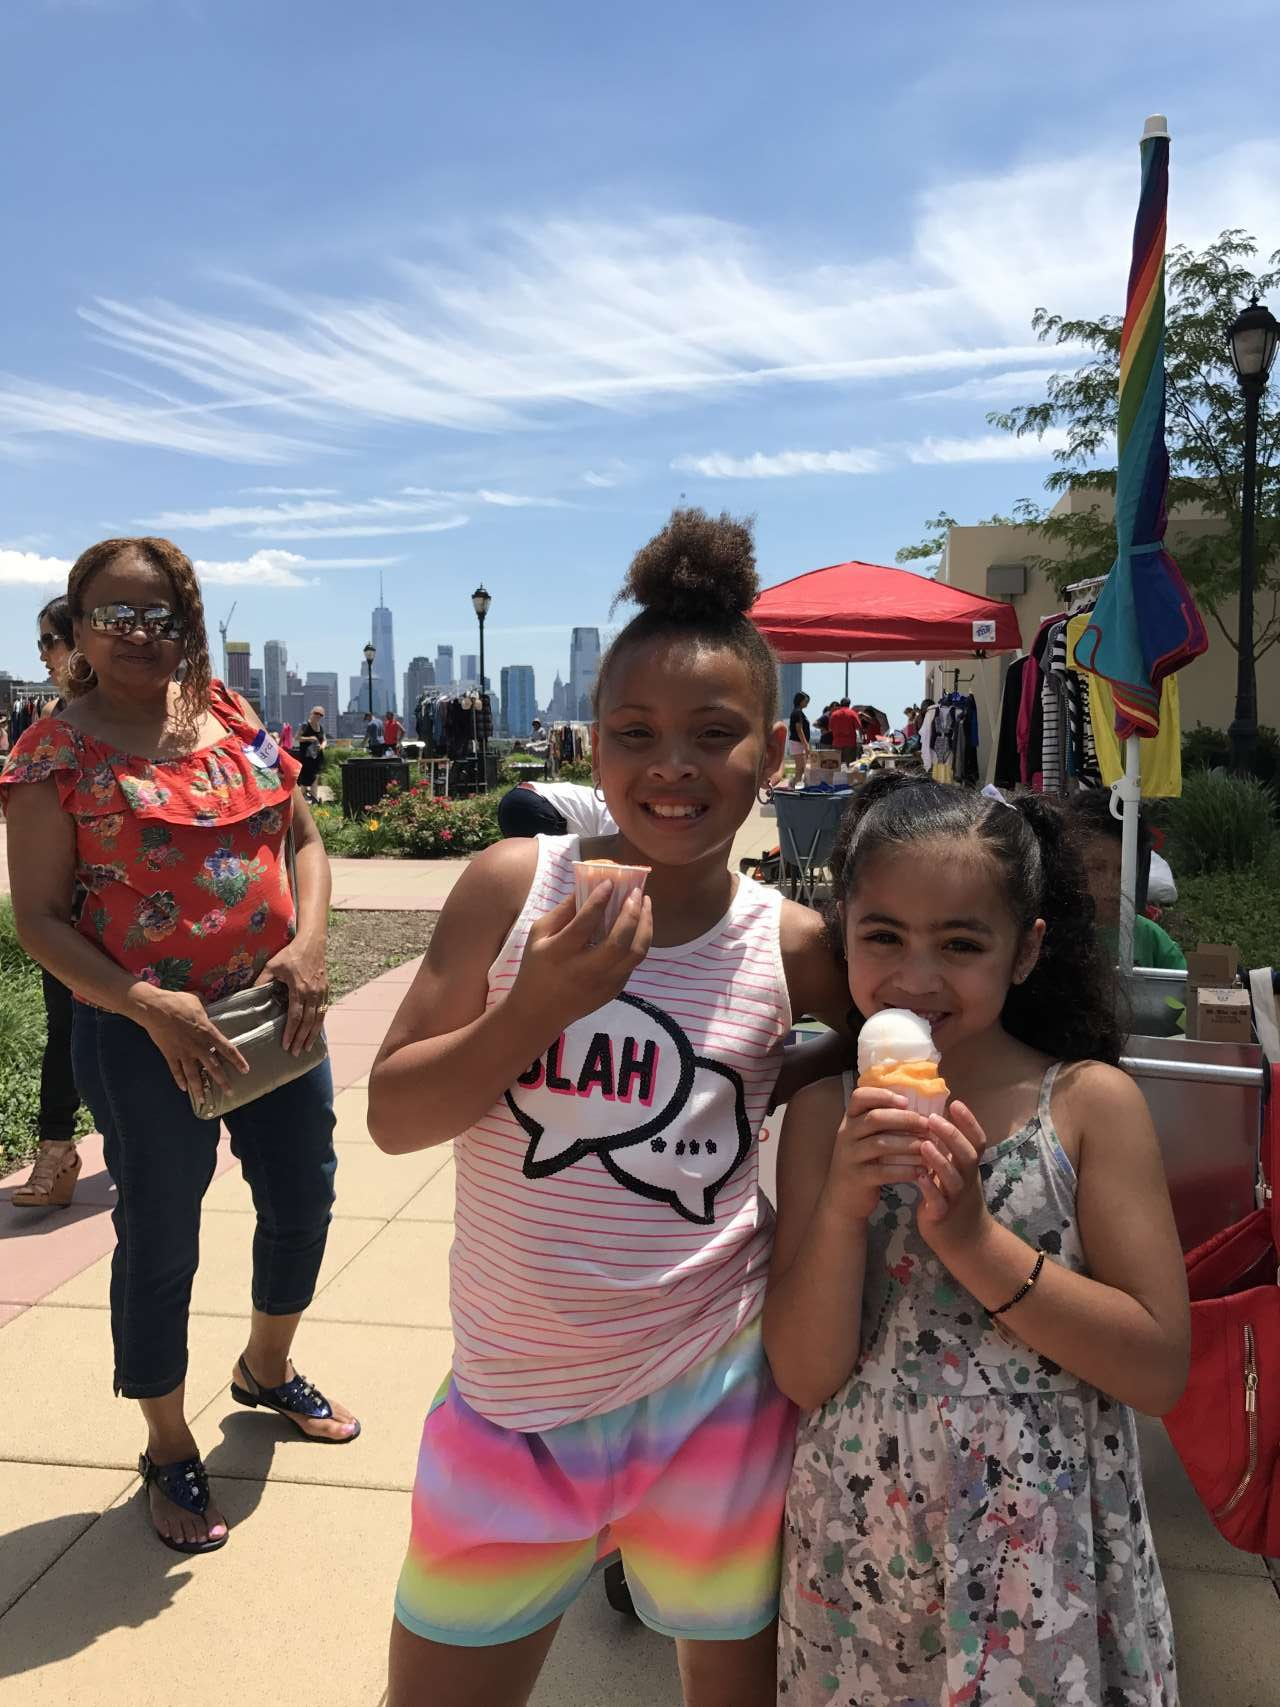 2 girls eating Italian Ice with brightly printed clothing on a summer day with NYC views in the background